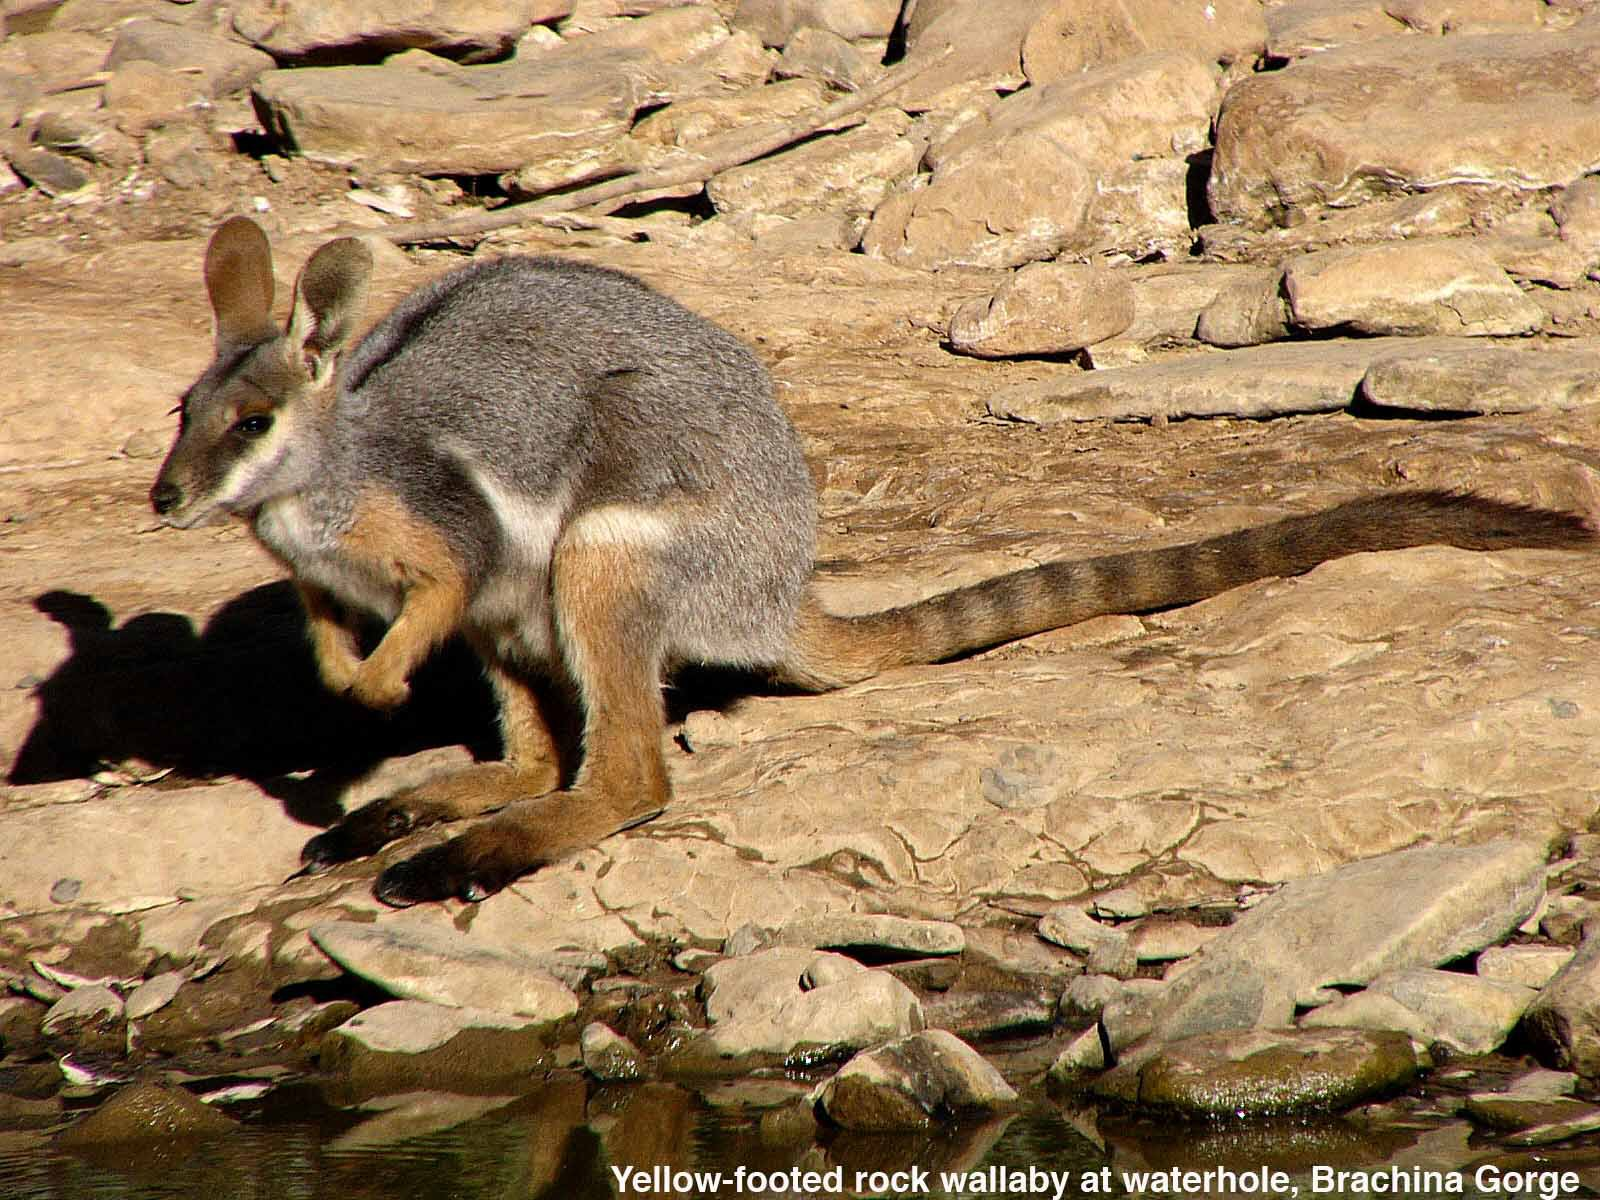 An adult Yellow-footed Rock-wallaby, Petrogale xanthopus xanthopus comes to drink at a waterhole in Brachina Gorge, Flinders Ranges, SA